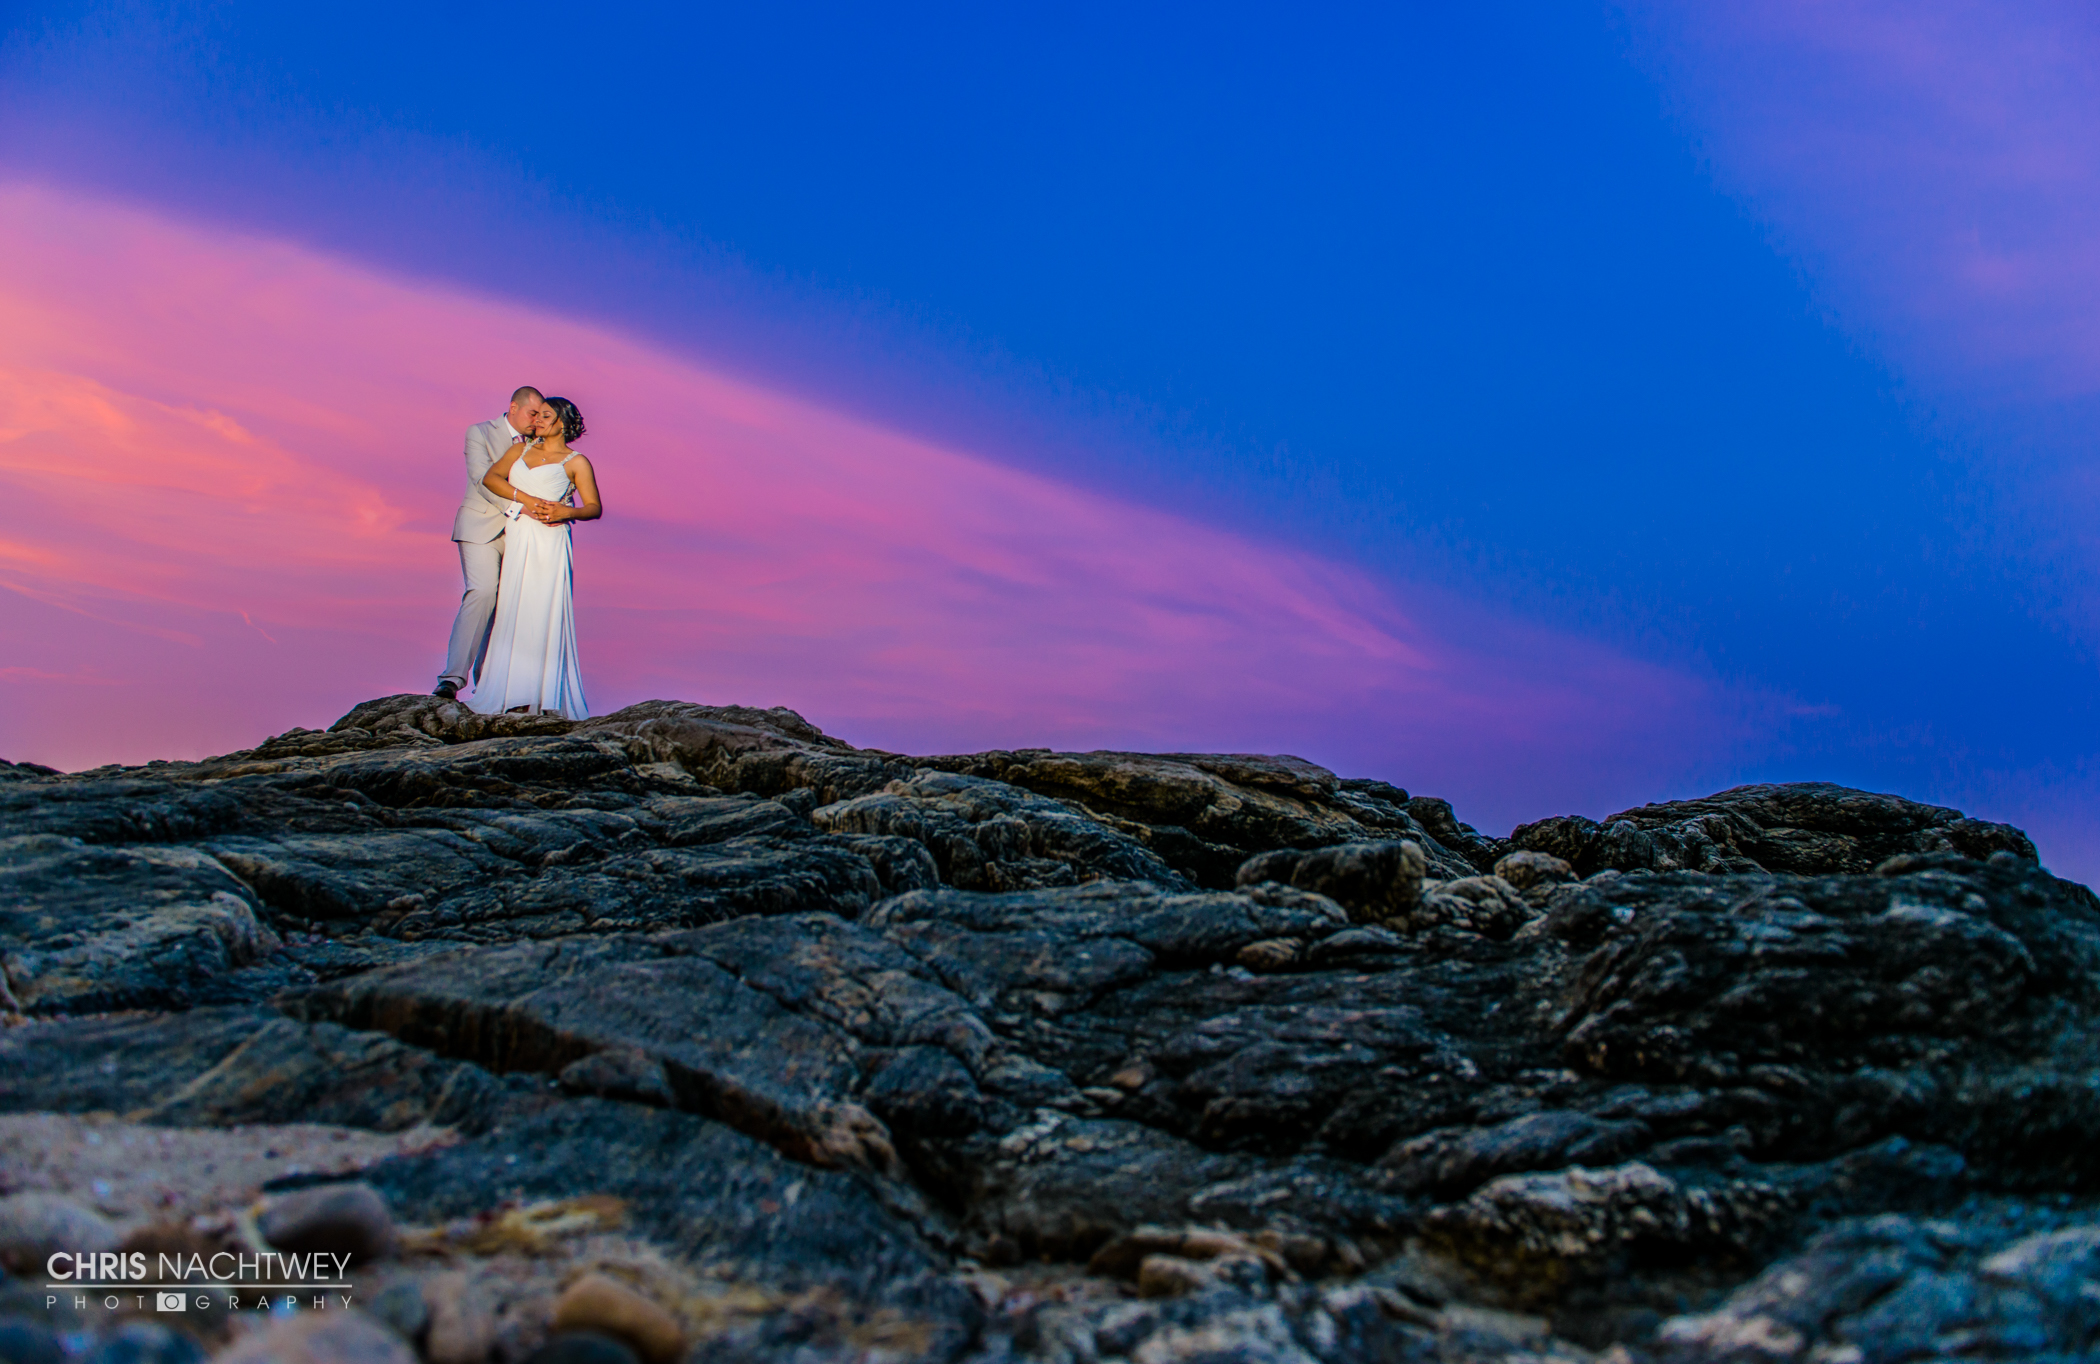 artistic-wedding-photographers-connecticut-chris-nachtwey-photography-2016.jpg